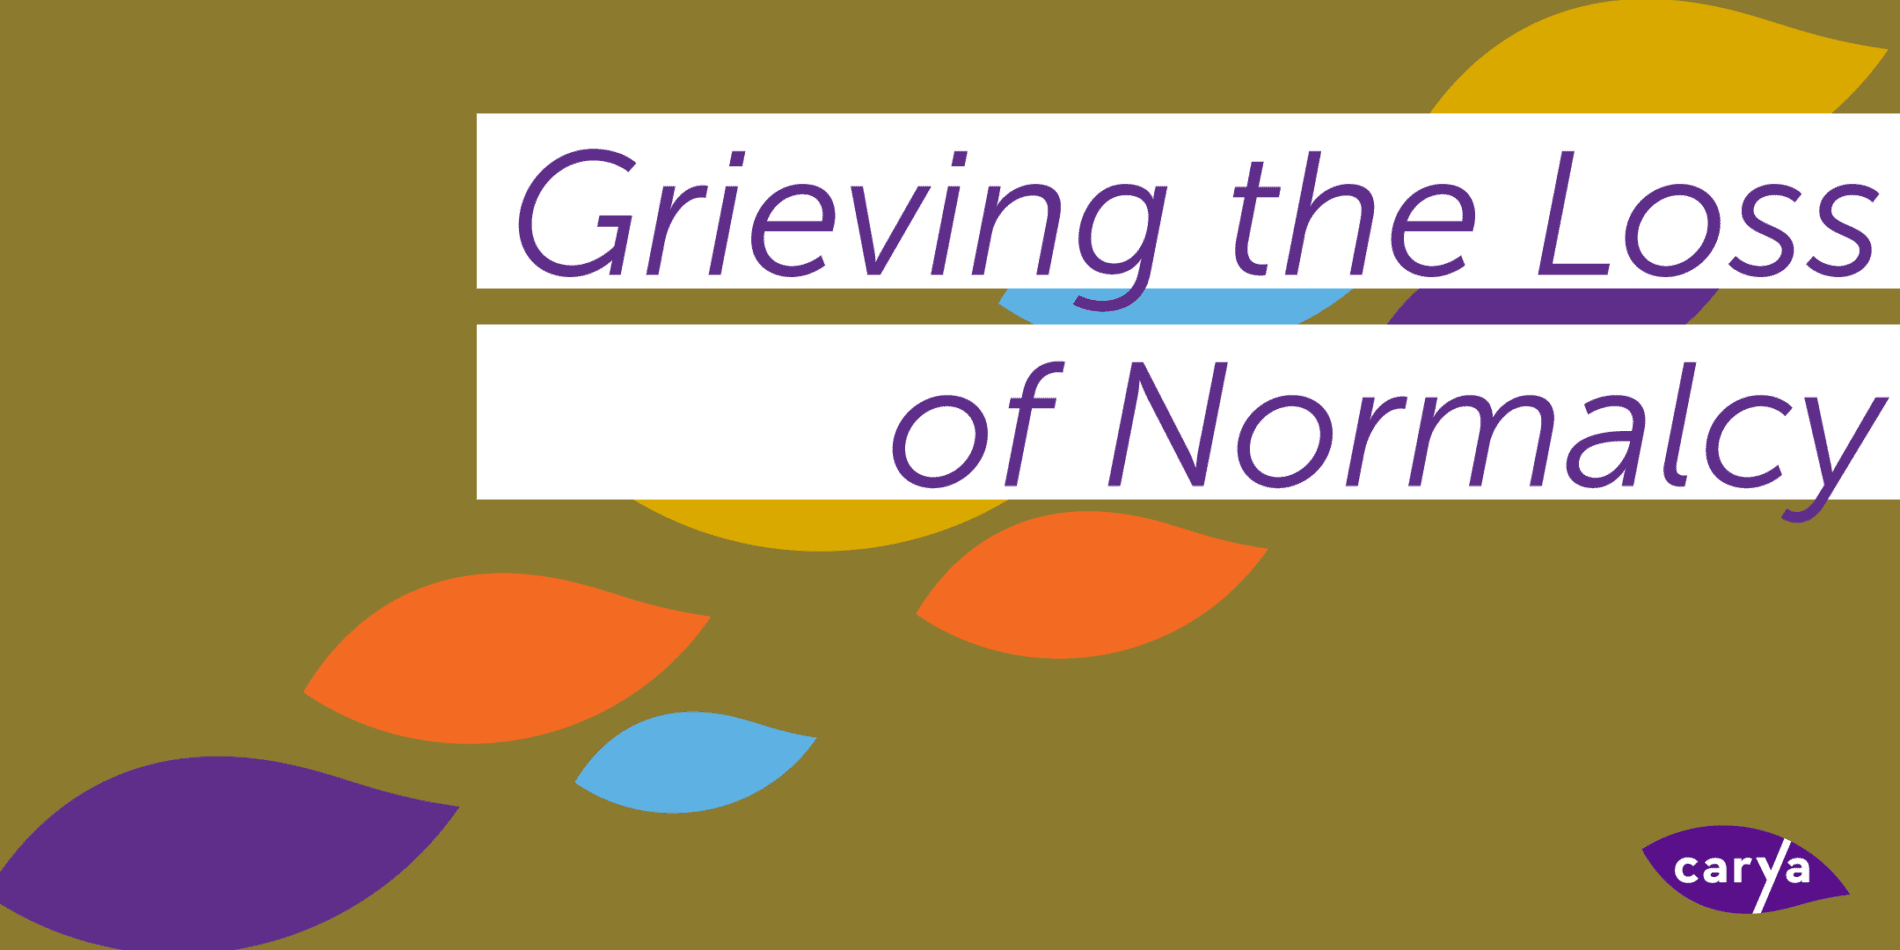 Grieving the Loss of Normalcy - carya